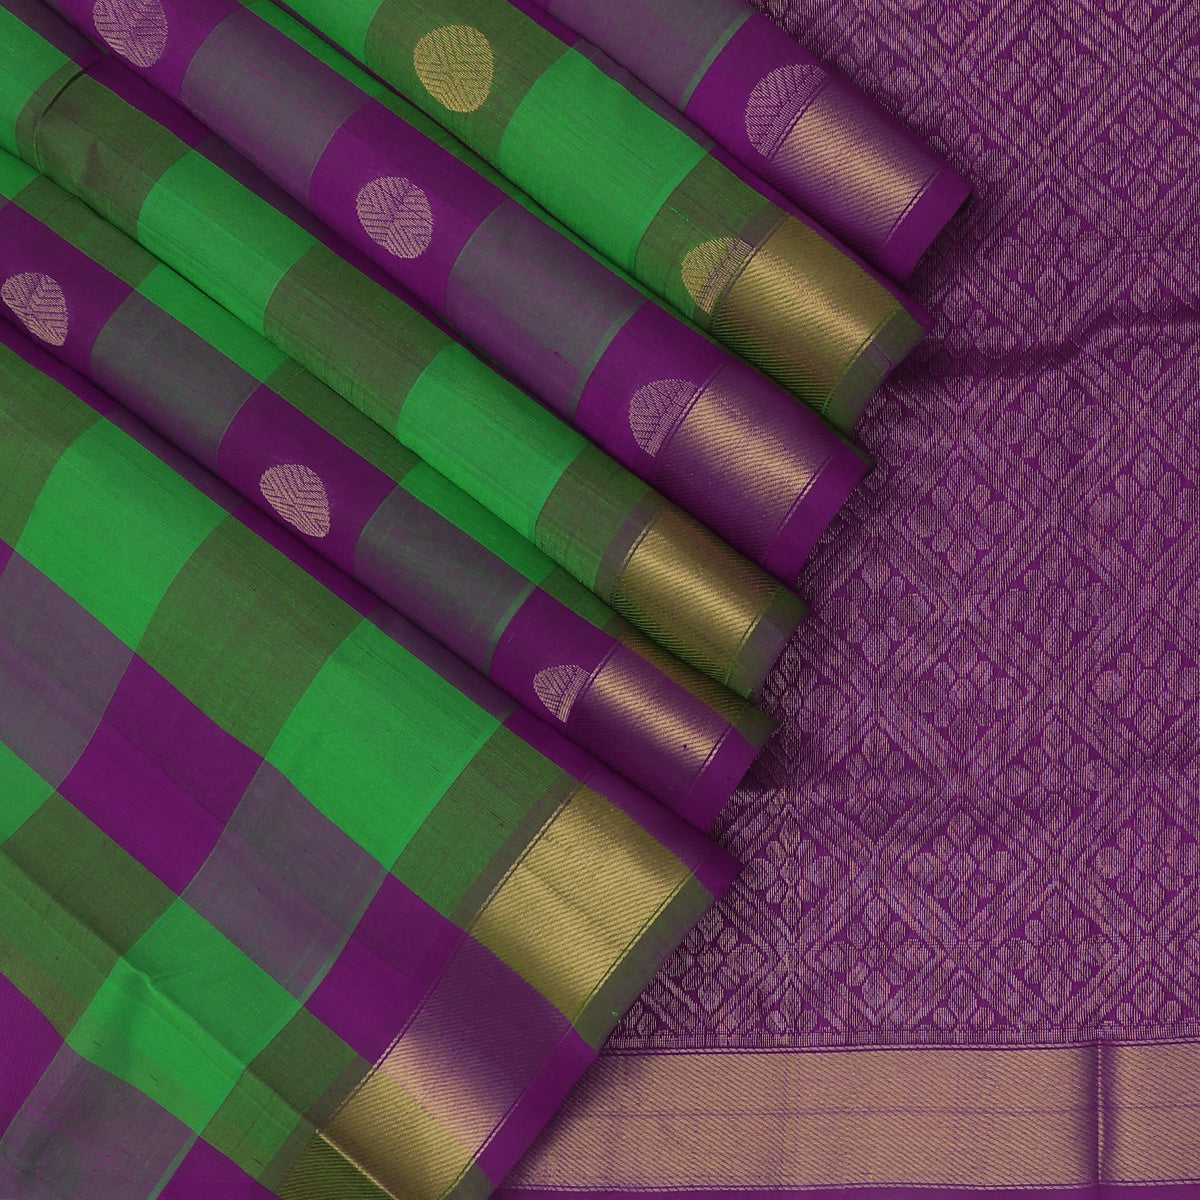 Silk Cotton Saree-Green and Violet Paalum Pazham Checks with Rudraksha buttas and zari Border